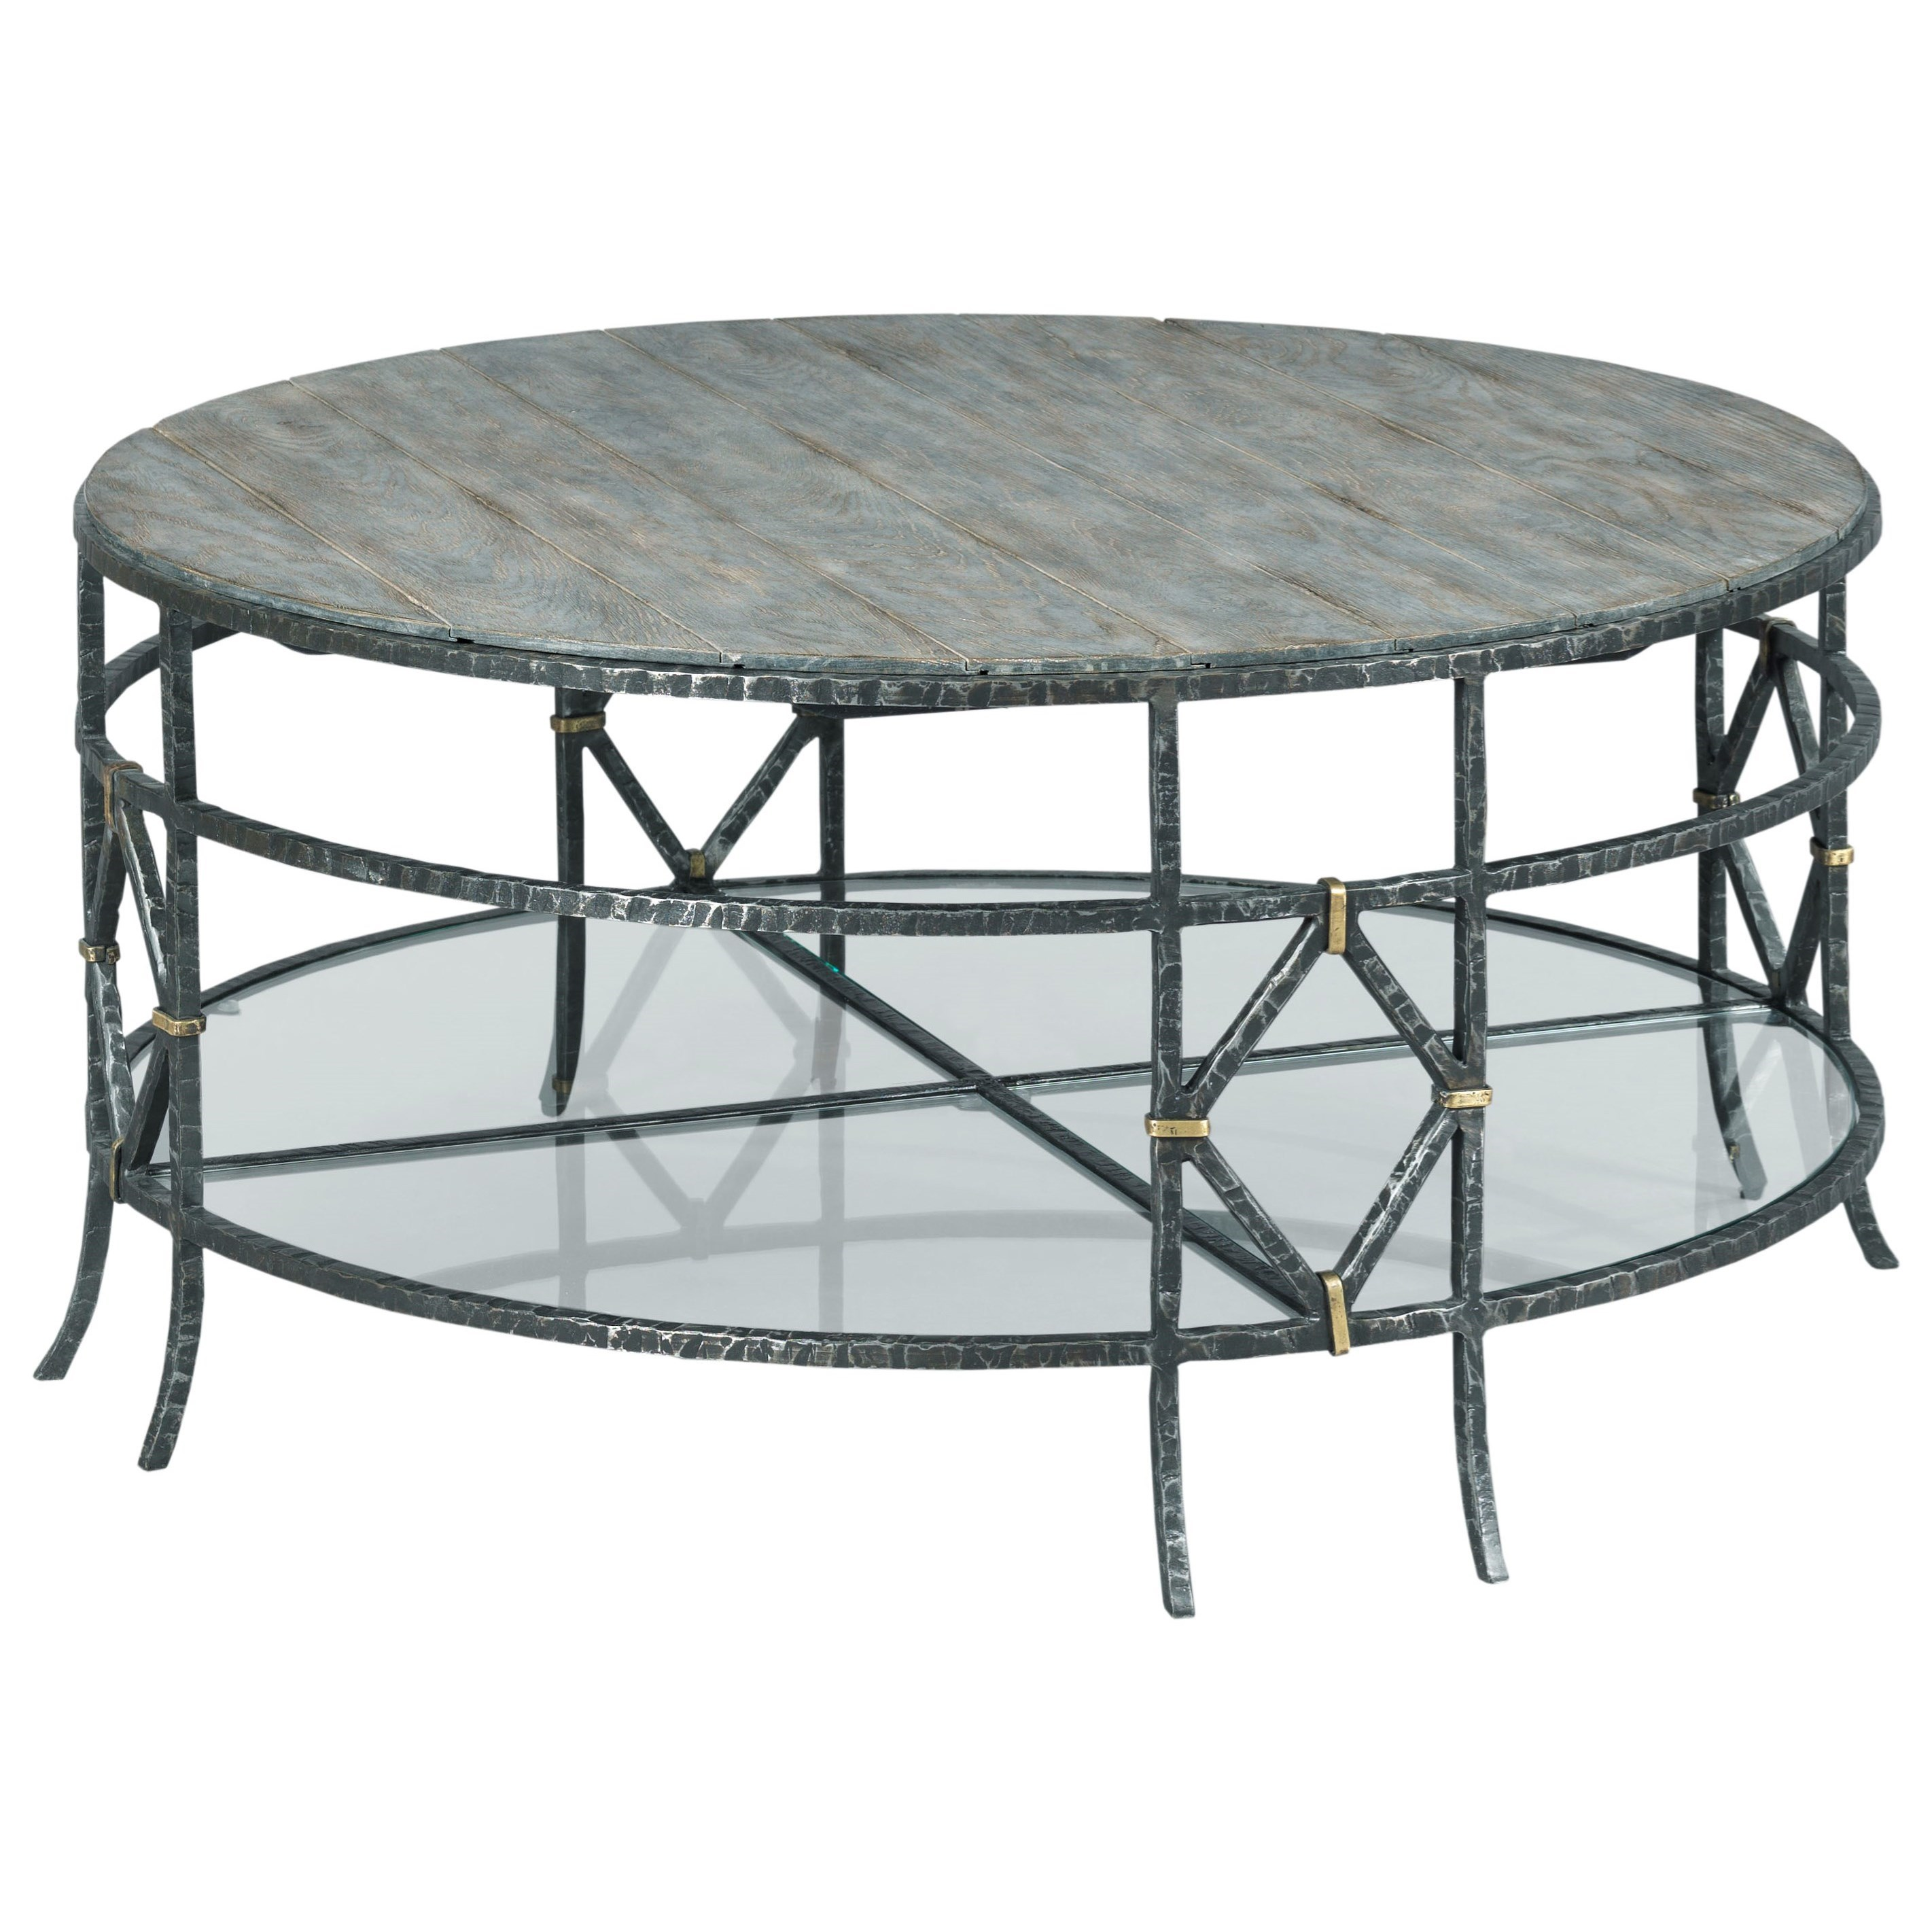 Trails Monterey Round Coffee Table by Kincaid Furniture at Northeast Factory Direct